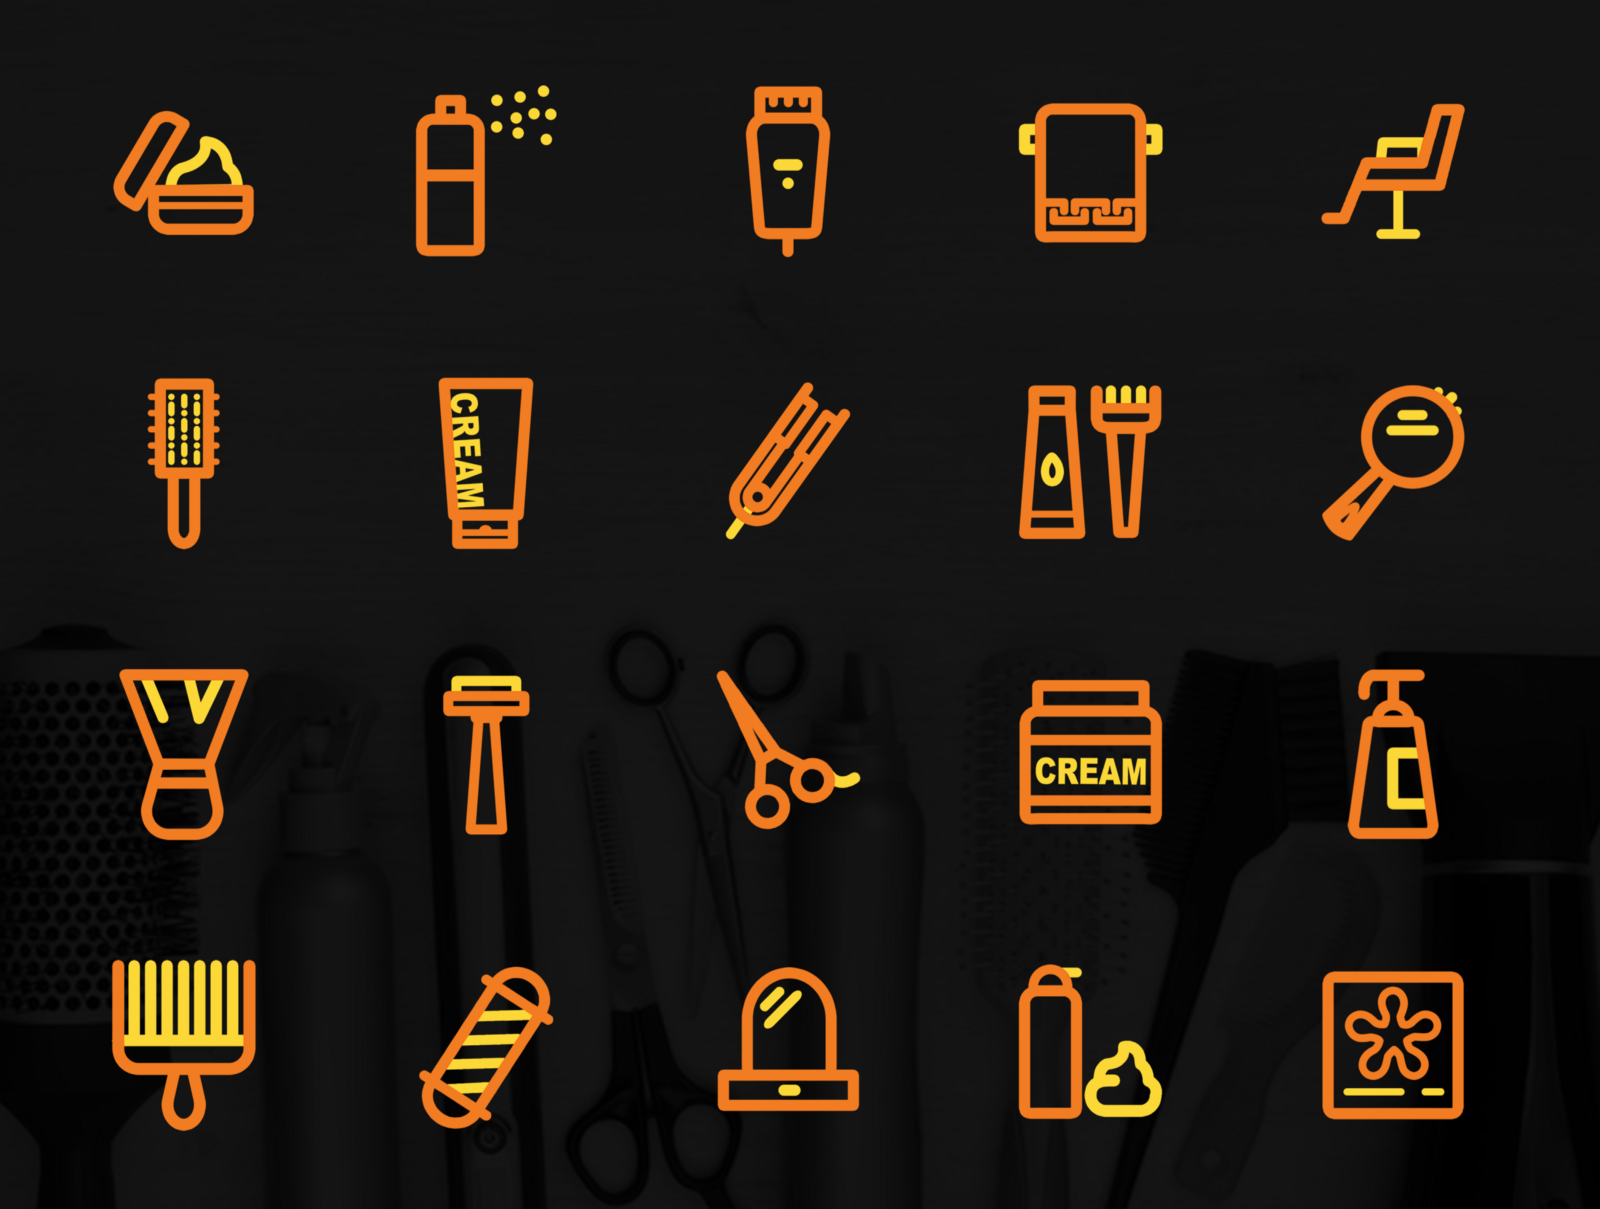 salon icon pack free psd download are you looking for salon icon pack png or psd we have 20 free resources for you a complete set of salon app